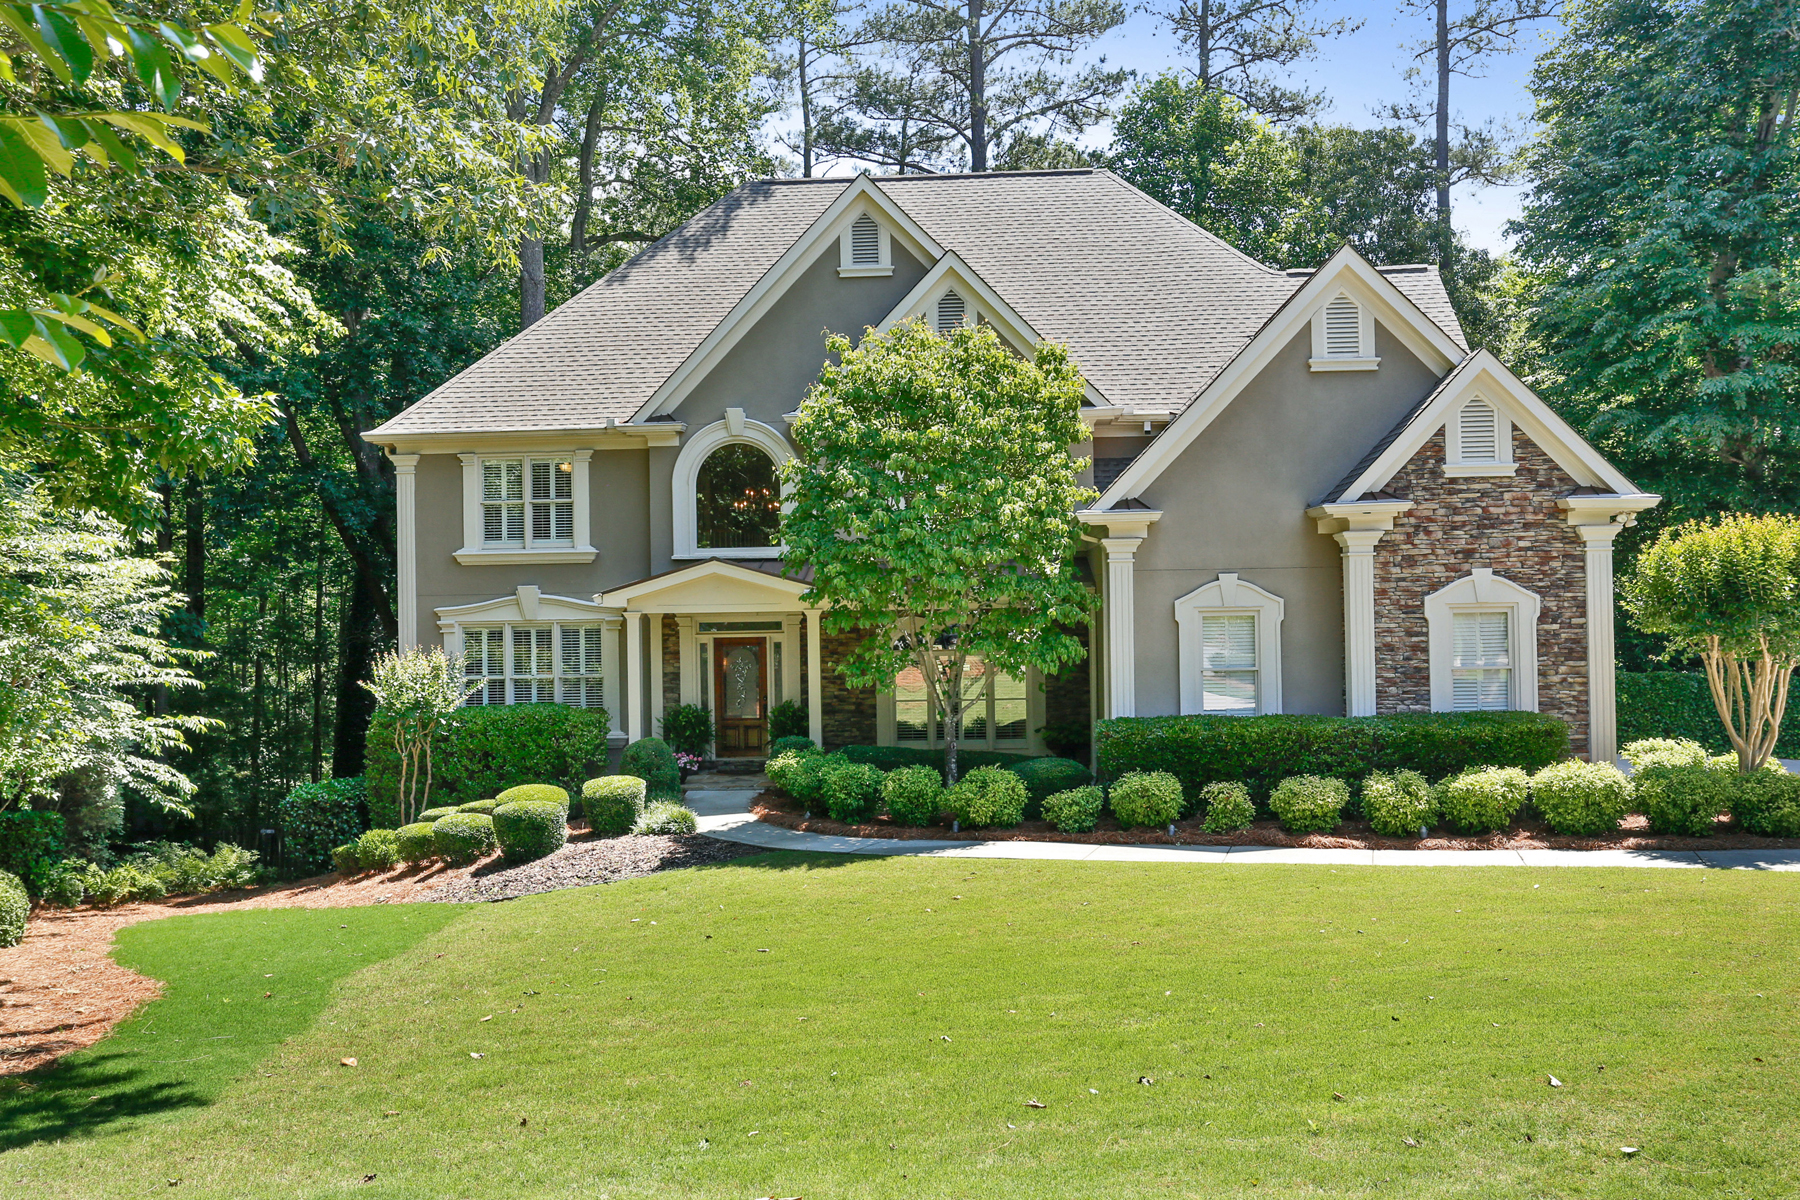 Single Family Home for Sale at Exquisite Executive Home in Milton 320 Oak Hill Ct Milton, Georgia 30004 United States